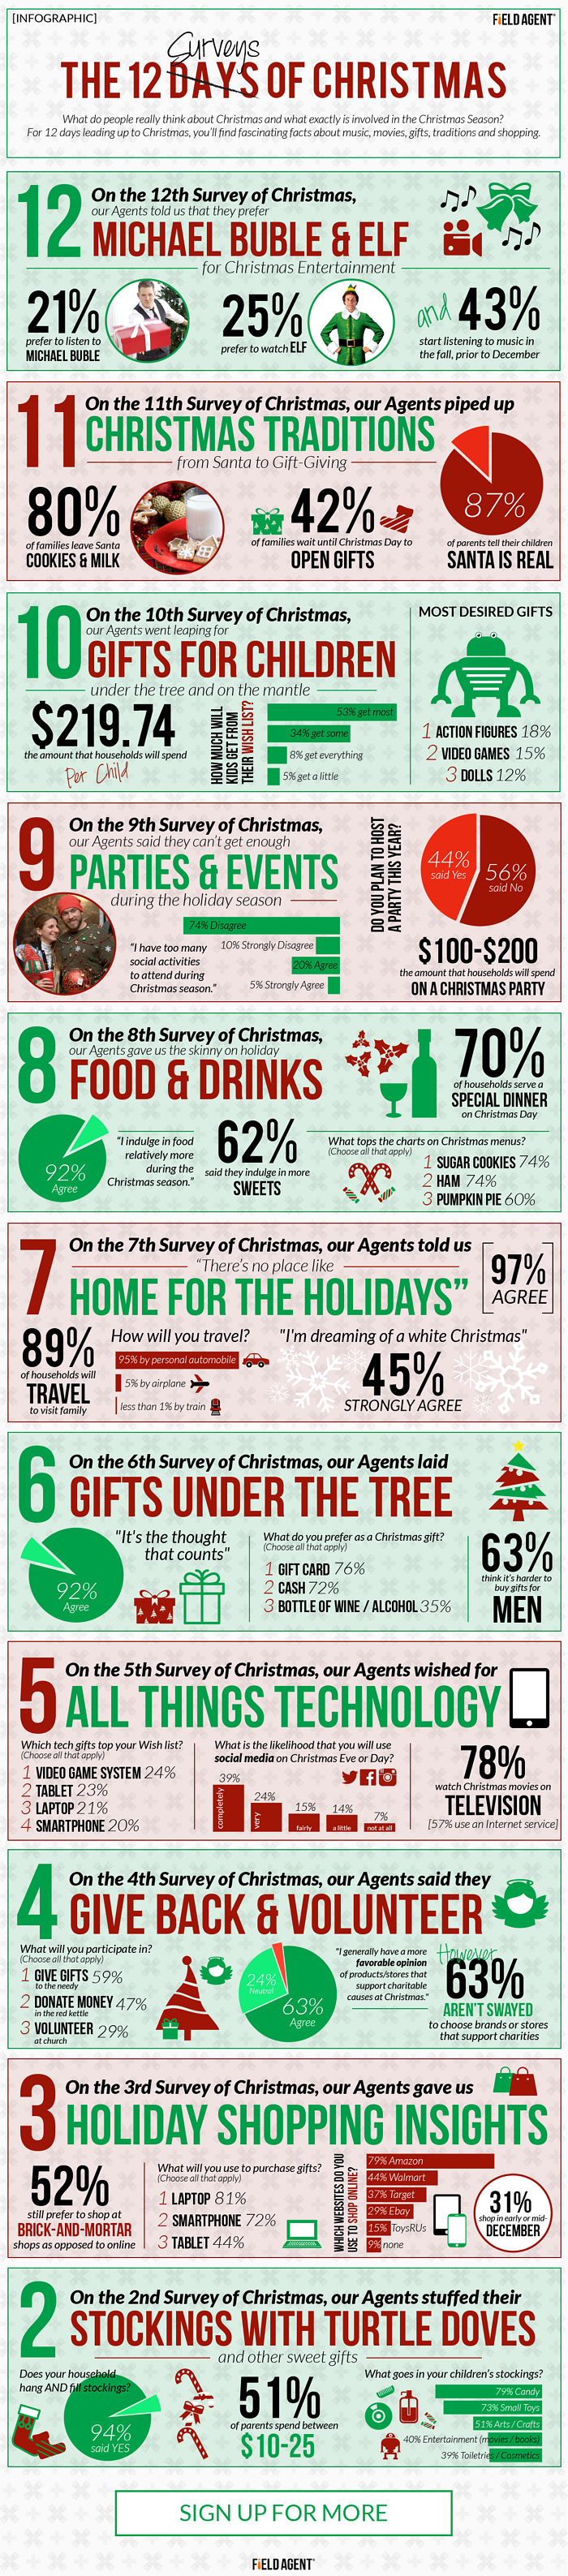 12 Surveys of Christmas Day 2 Infographic